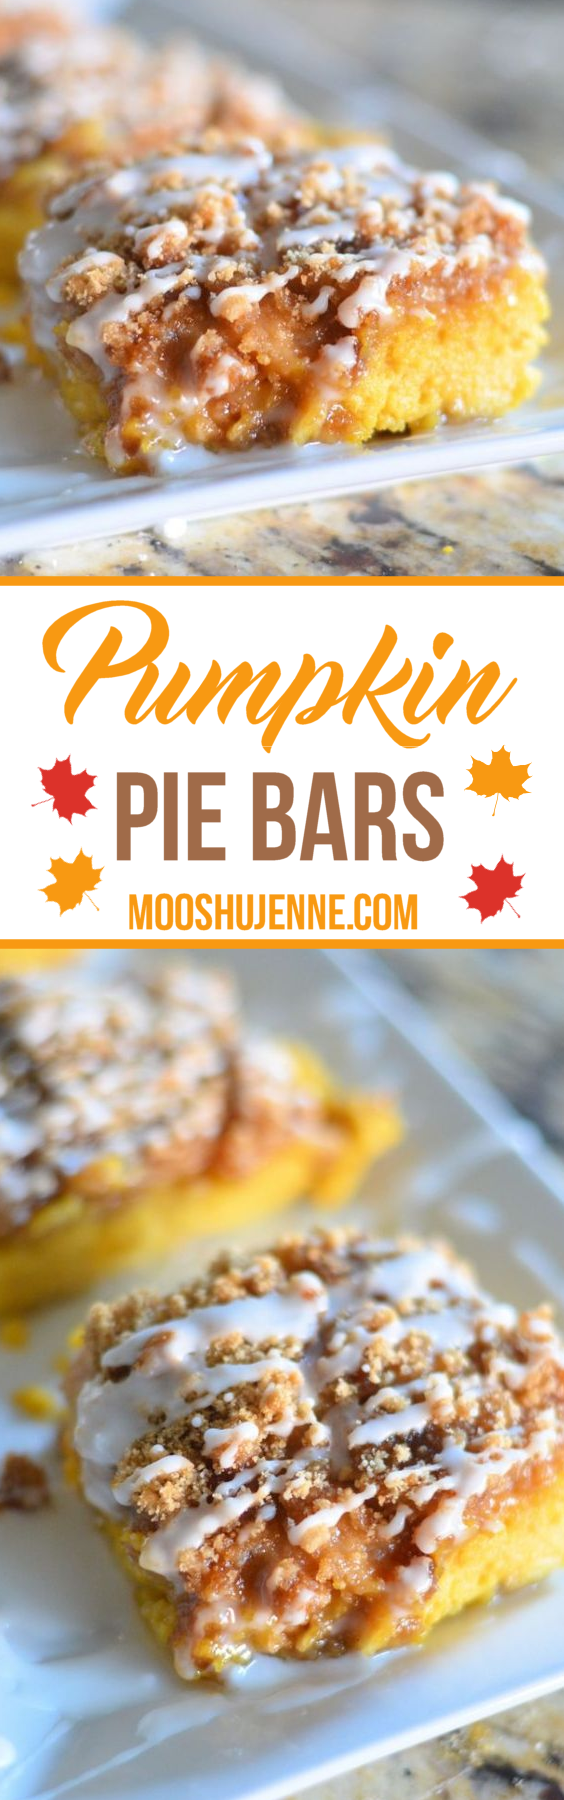 Pumpkin Pie Bars. They are simple. They take about an hour to put together and as you see below they come out pretty. Just drizzle a bit of icing, add a candle, and serve!